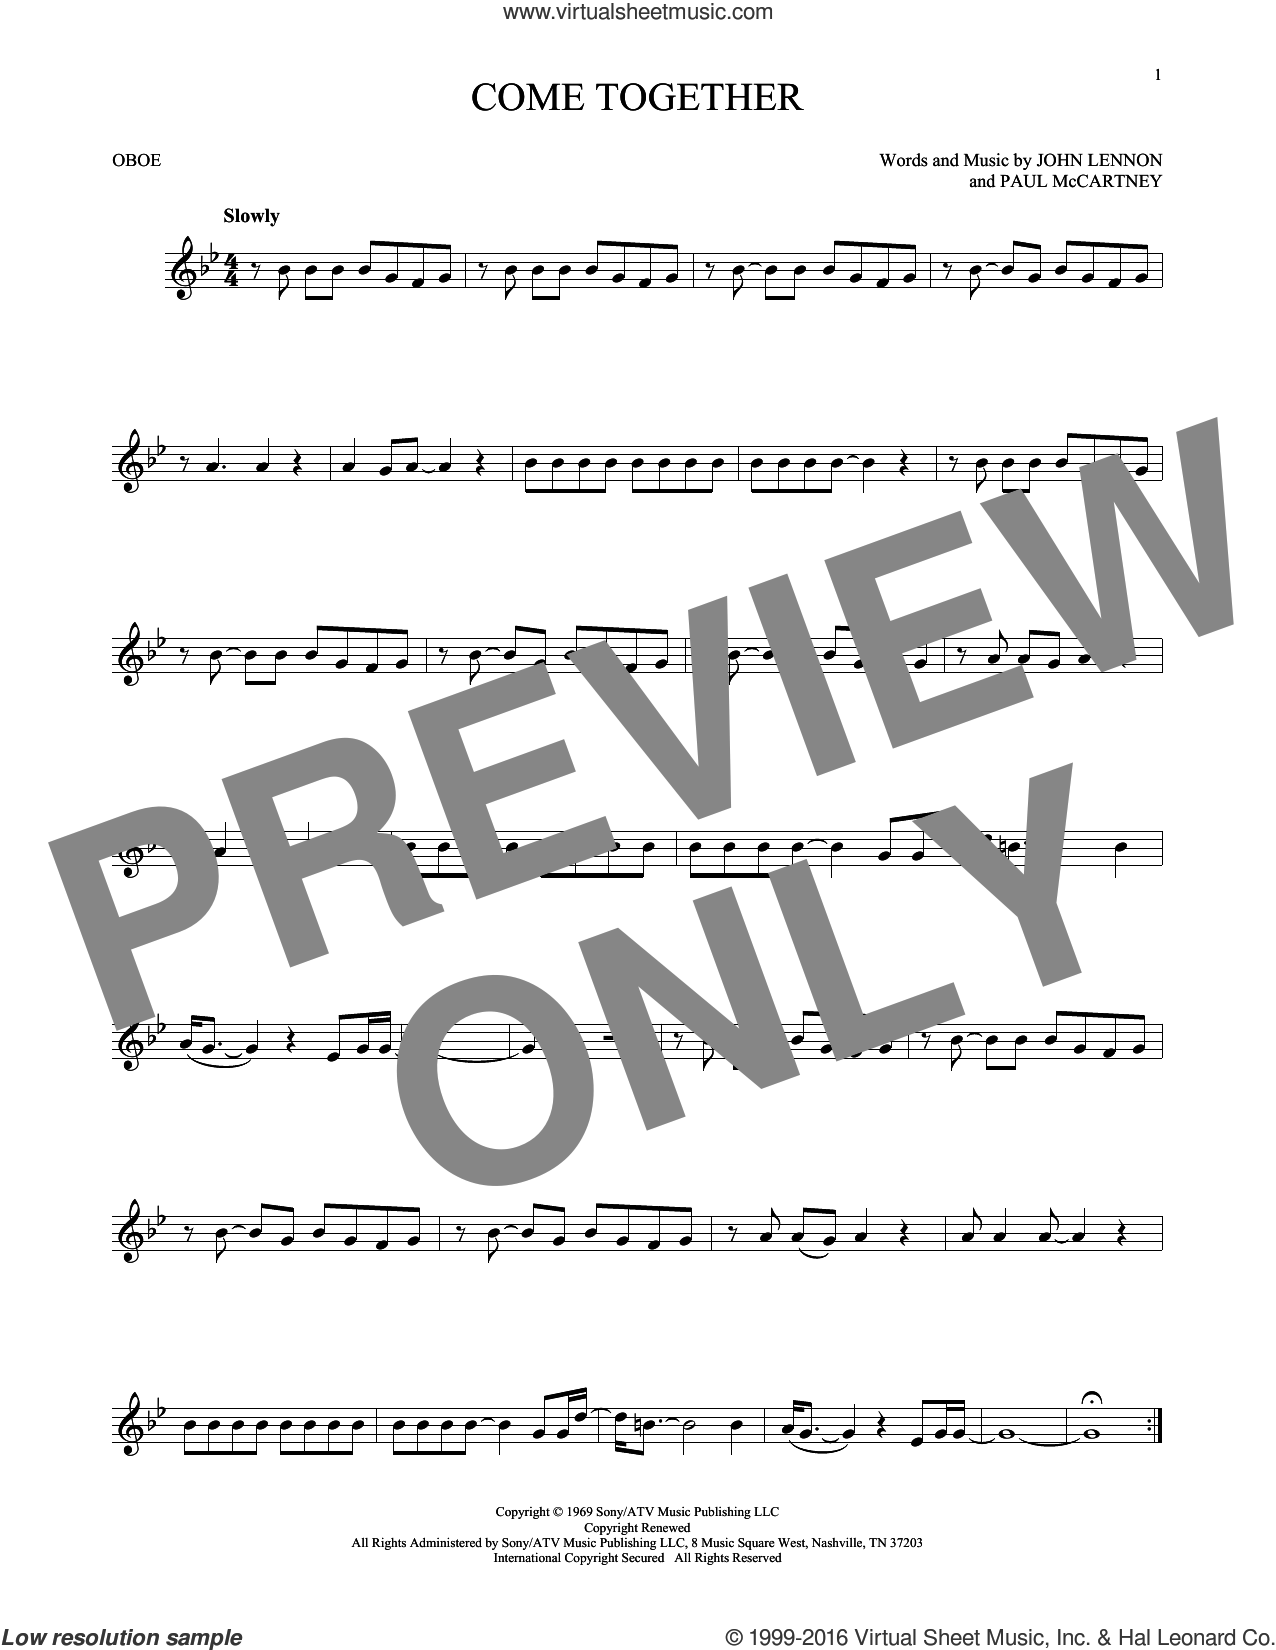 Come Together sheet music for oboe solo by The Beatles, John Lennon and Paul McCartney, intermediate skill level